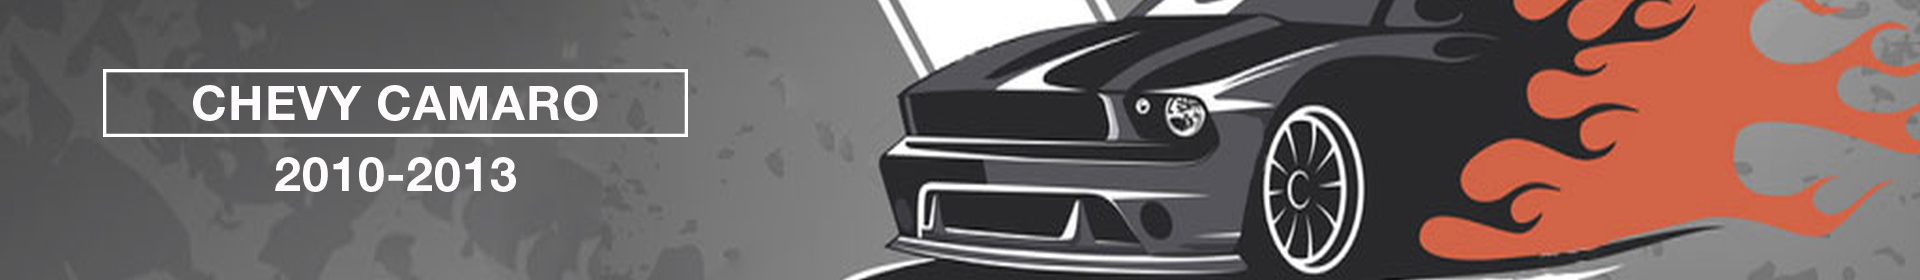 category-page-headers-camaro-2010-02.png